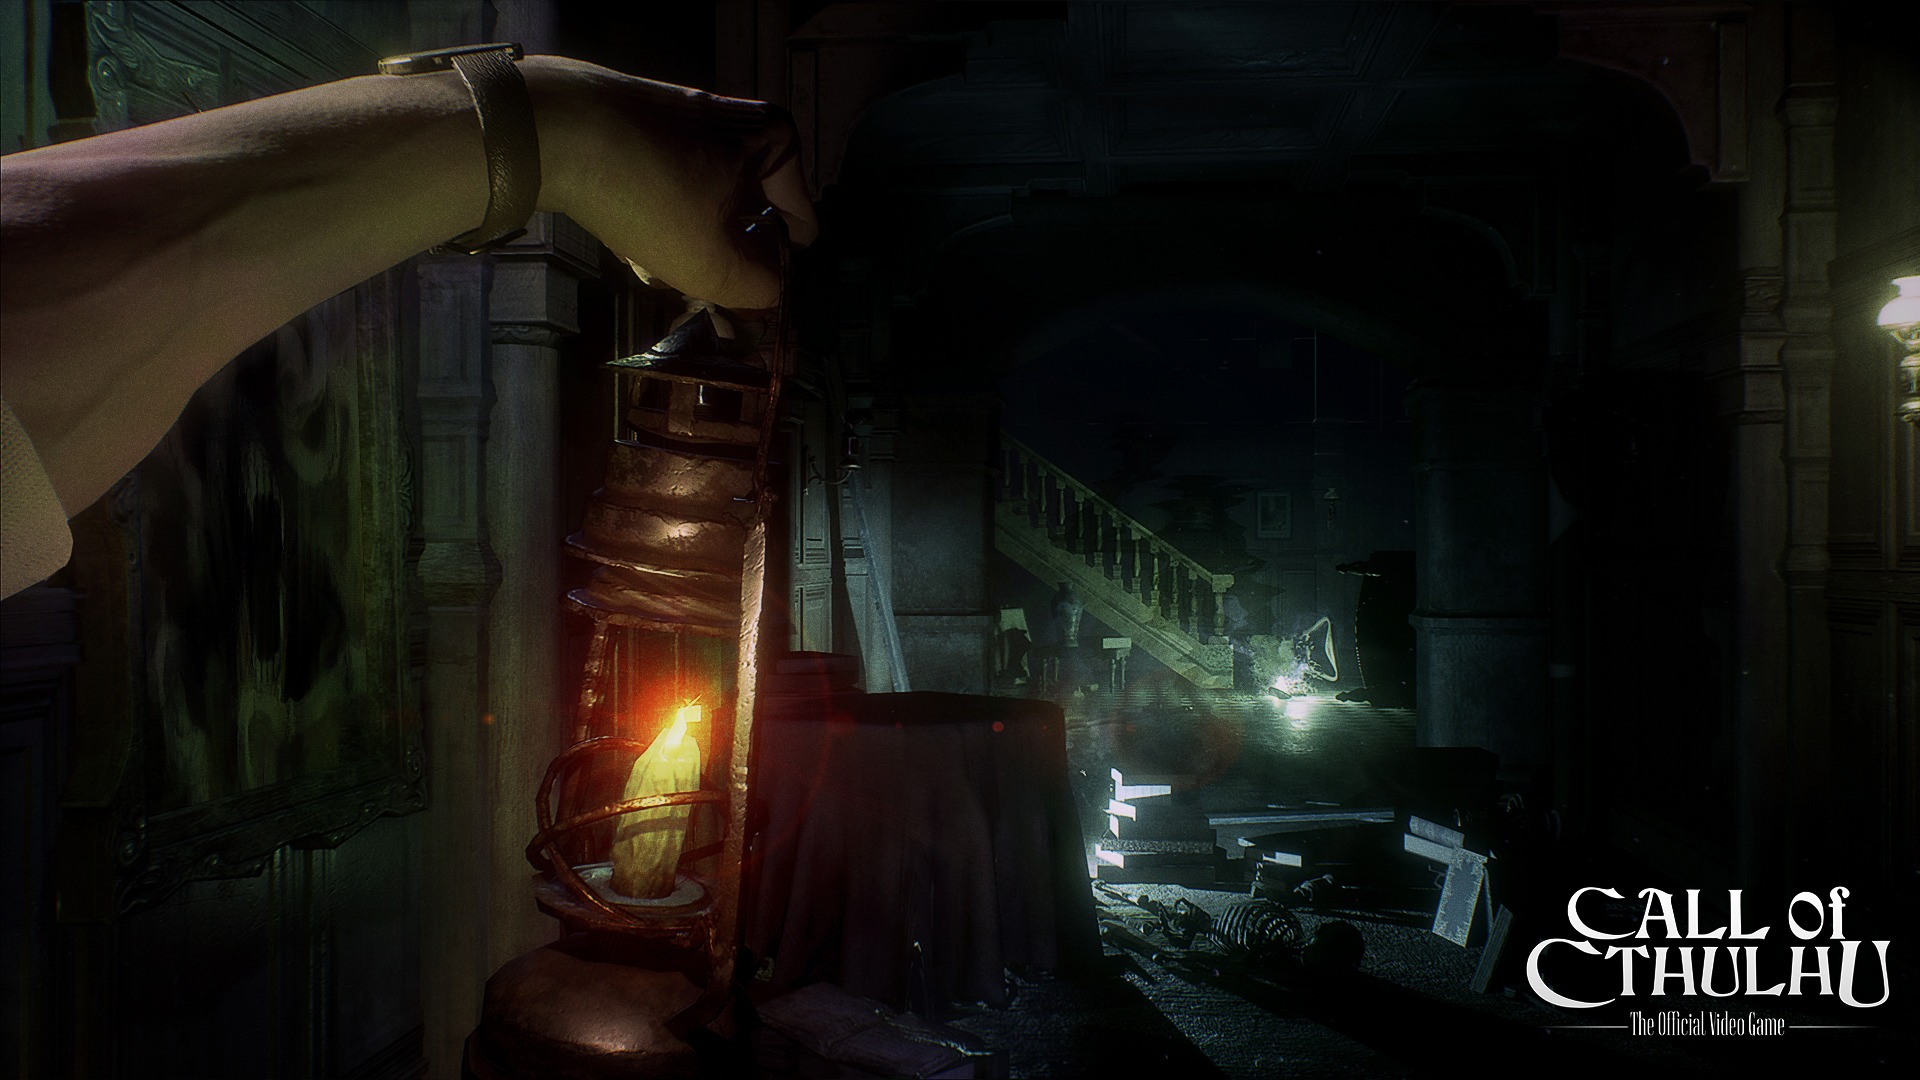 call of cthulhu the official video game premiera